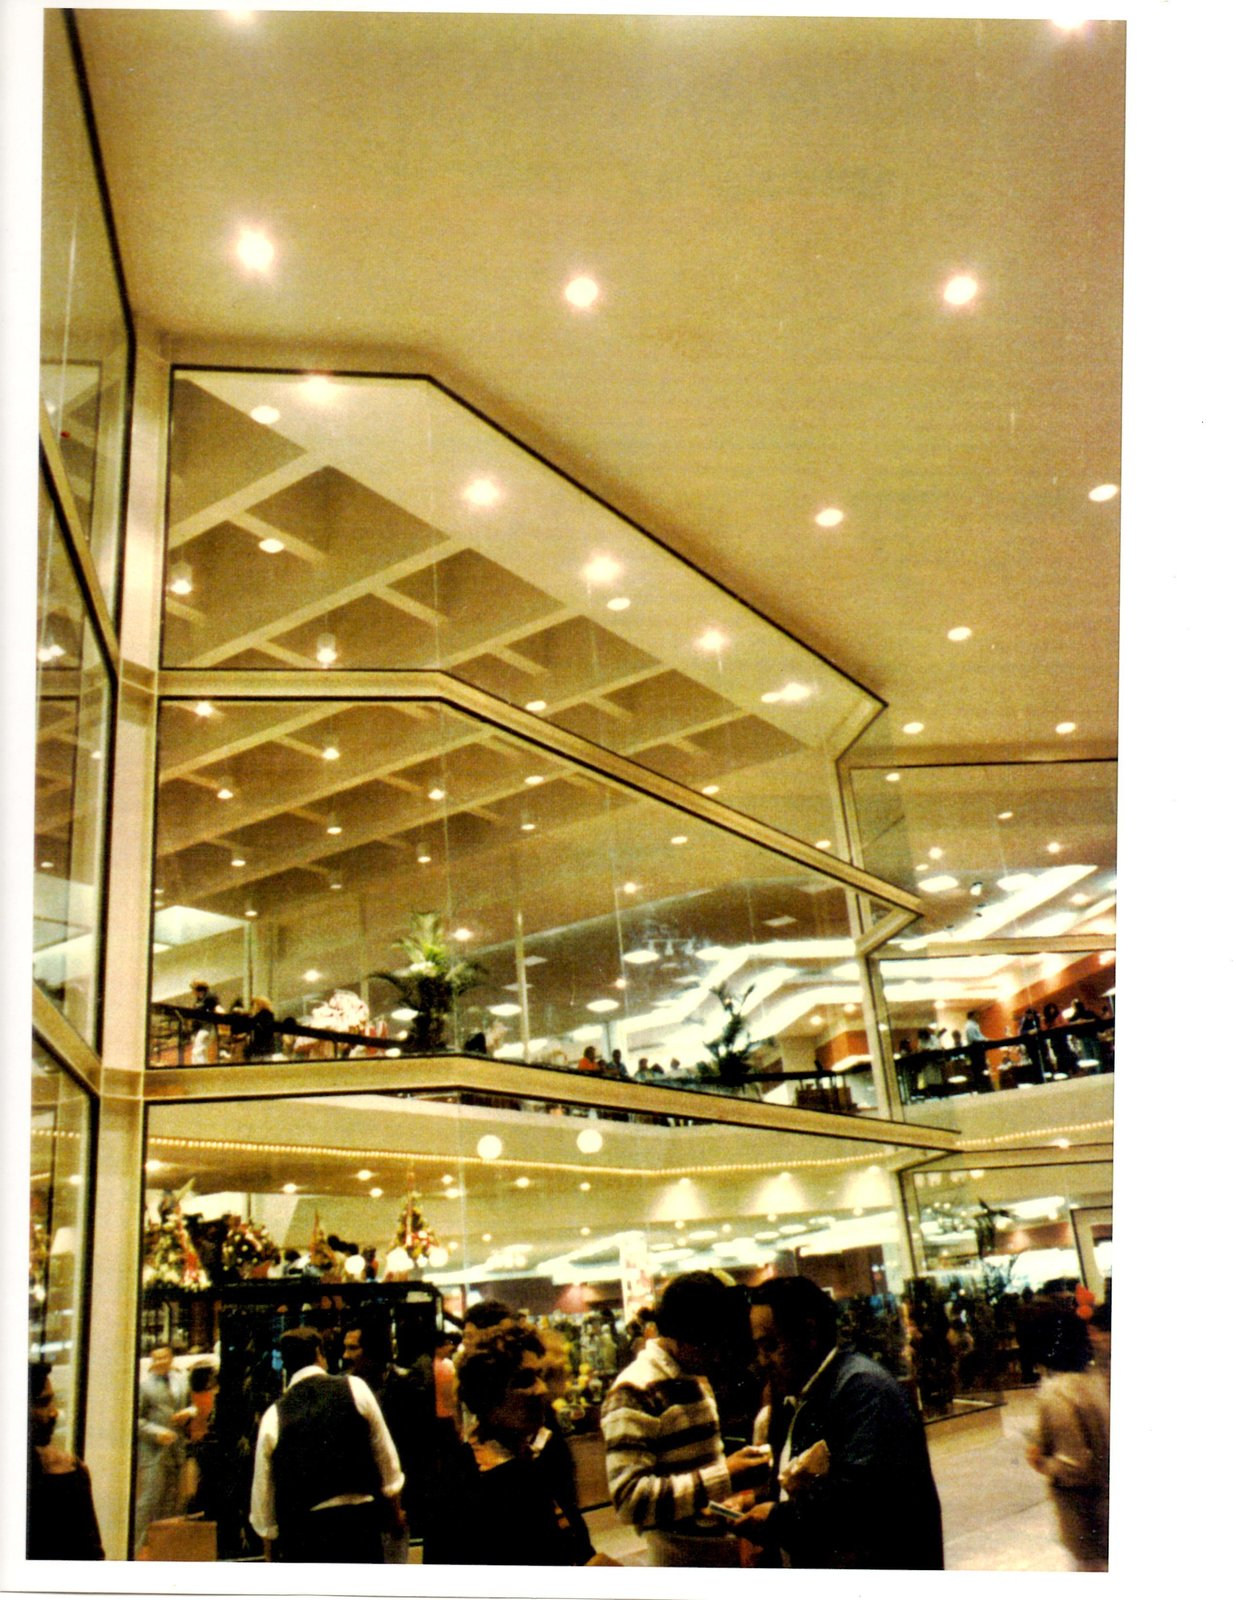 GALLERY PLAZA DEPARTMENT STORE Glass curtain wall served successfully as catalytic between exterior and interior activities at the store.  RETAIL STORES by DM Planning and Architecture Consultants